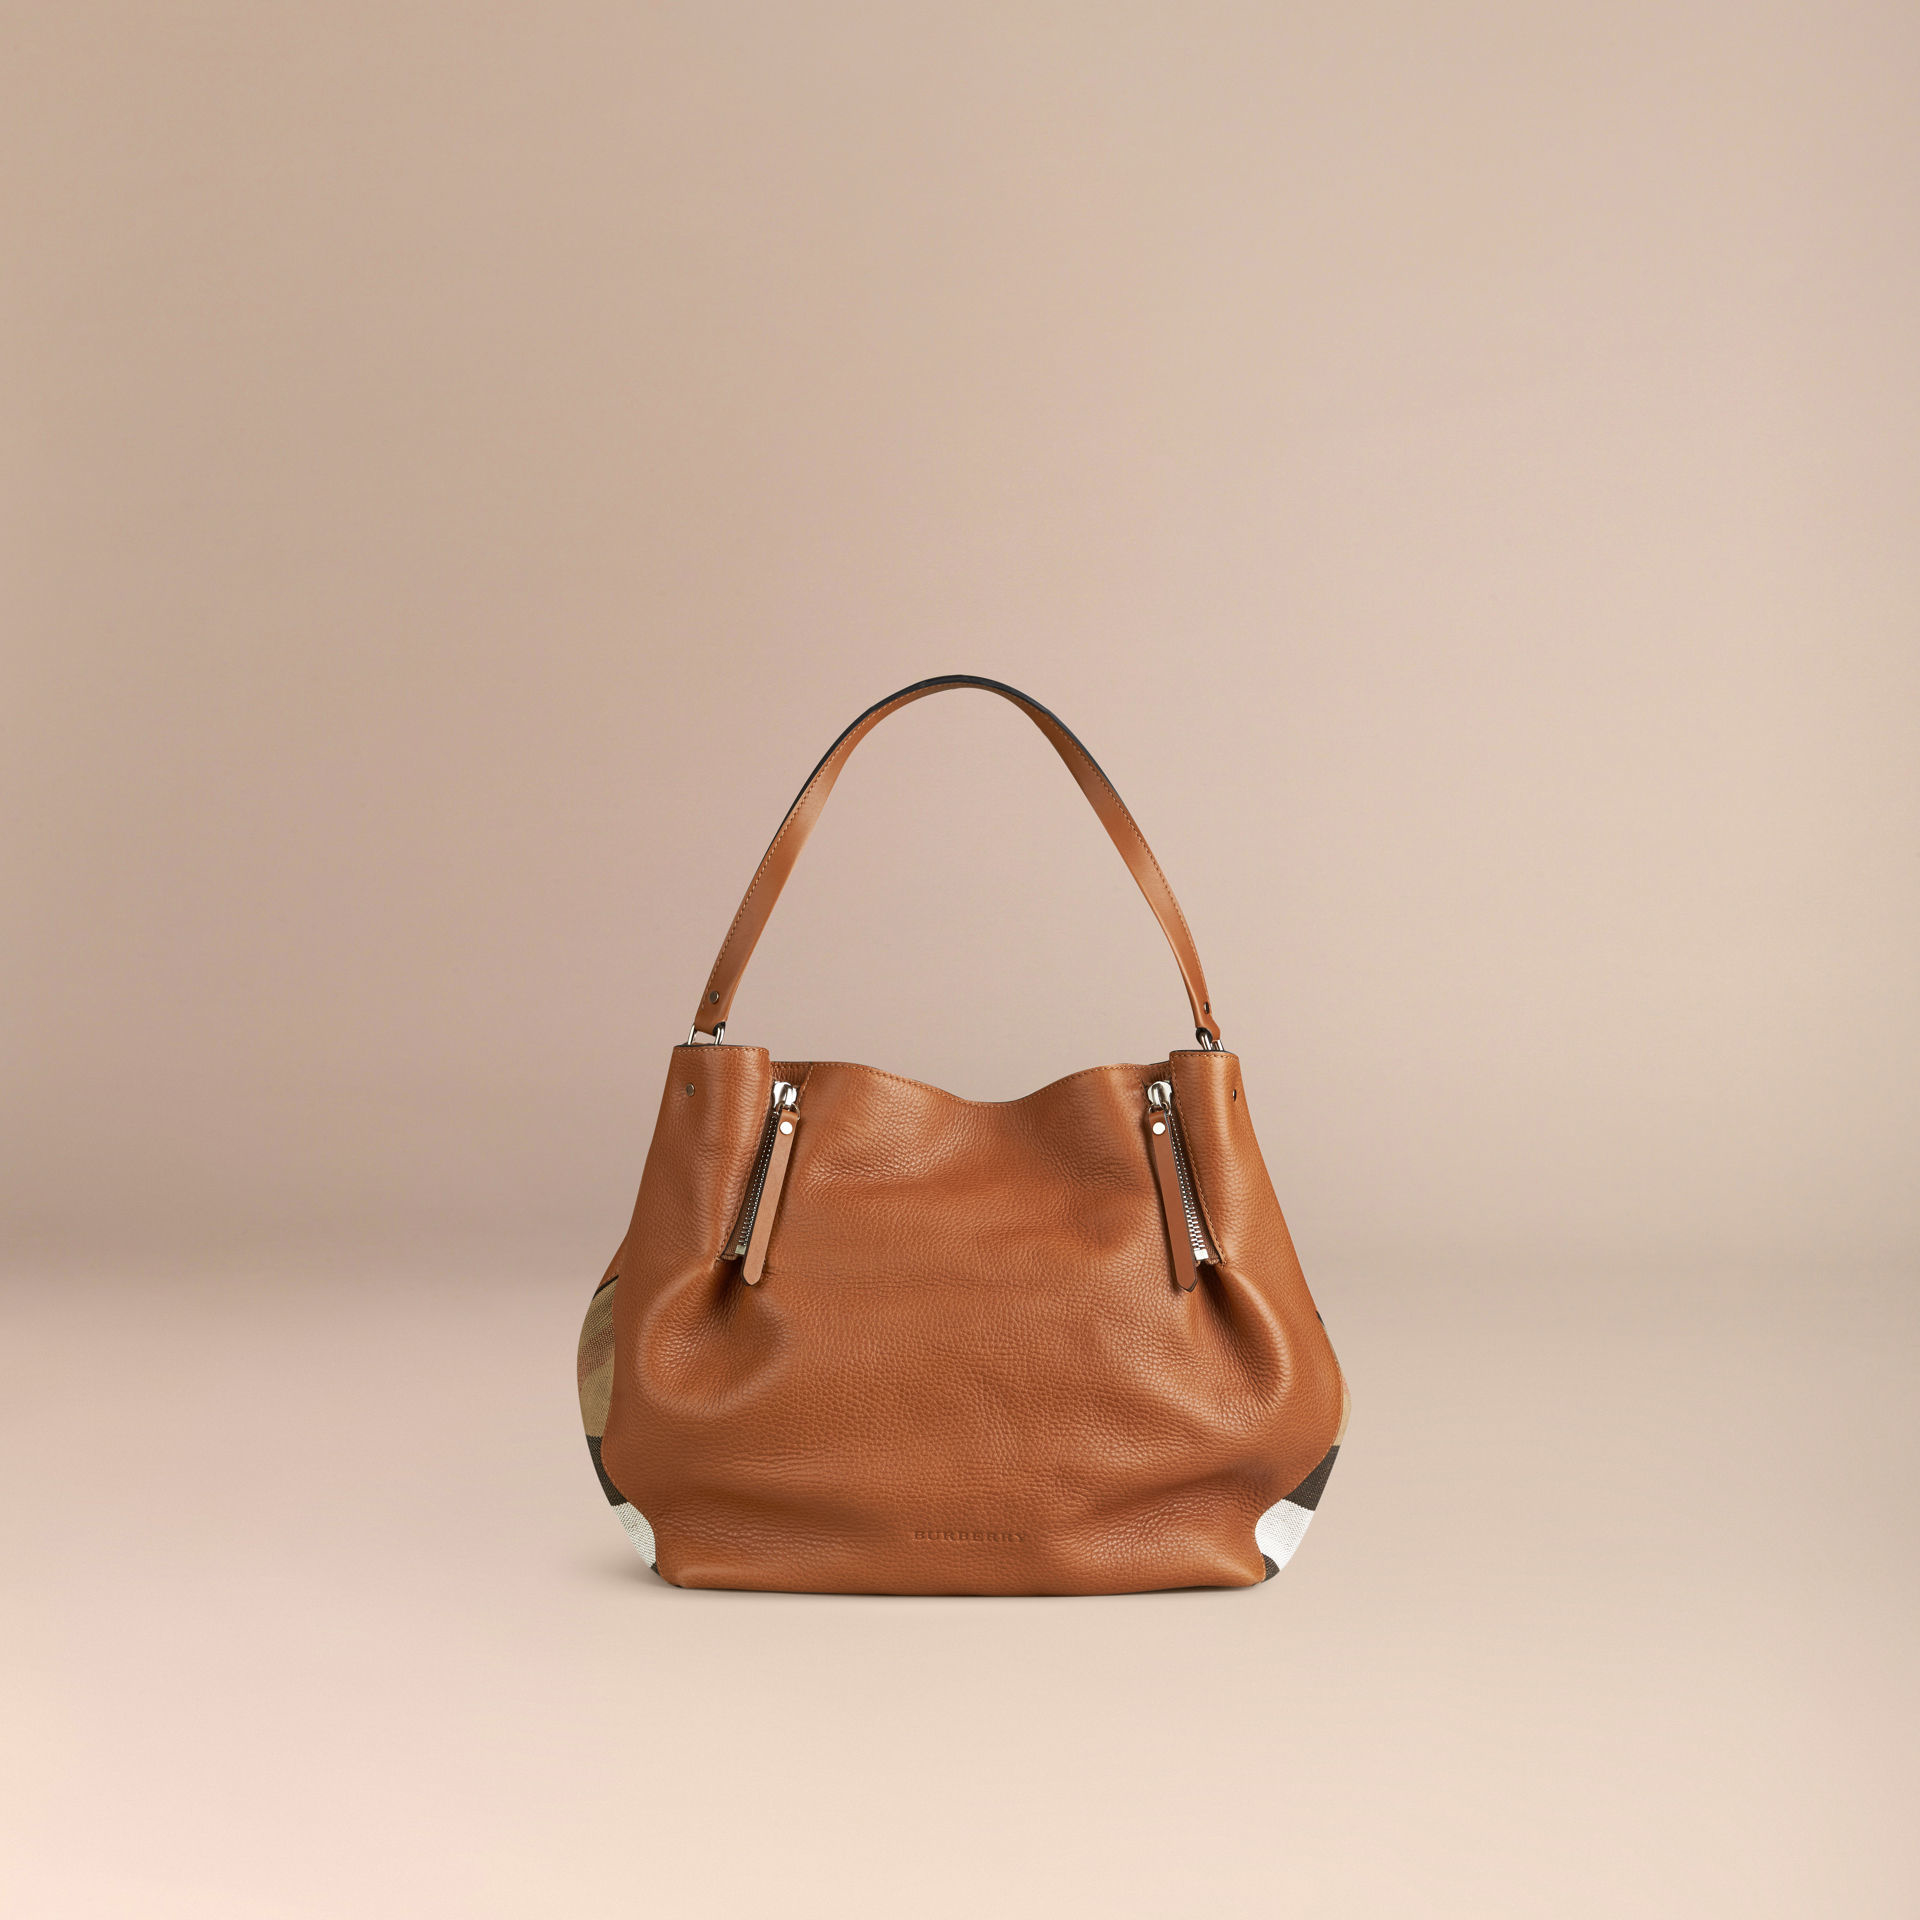 5e153dd553cd Lyst - Burberry Maidstone Medium Check Detail Leather Tote Bag ...